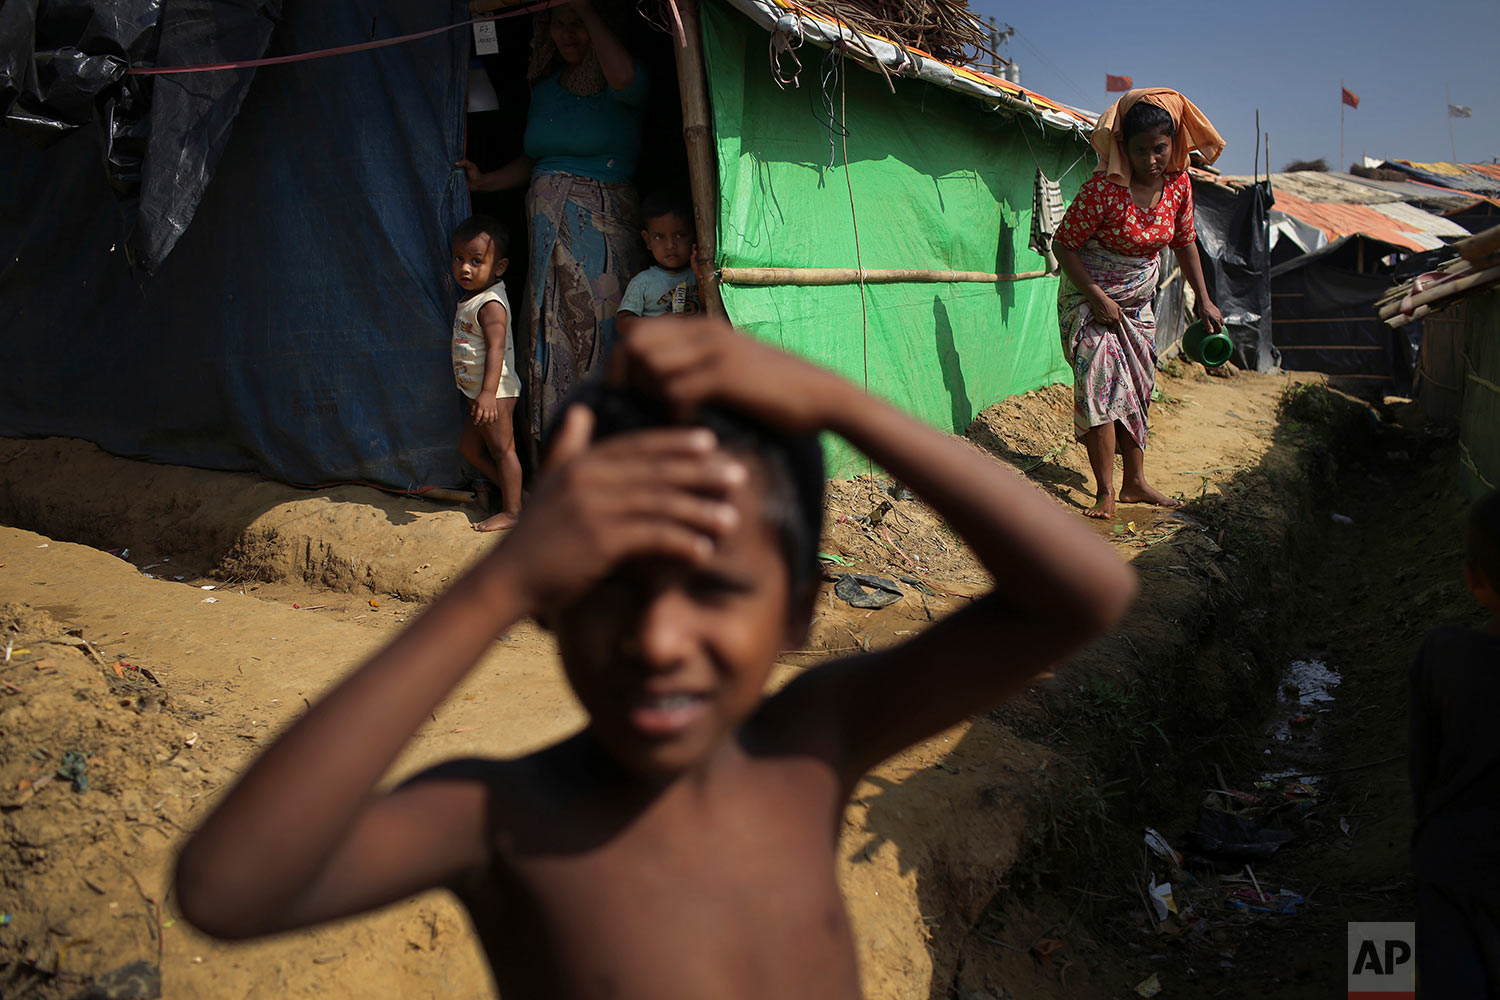 "A Rohingya boy plays outside his family's tent in Kutupalong refugee camp on Saturday, Nov. 25, 2017, in Bangladesh.  The United Nations and others have said the military's actions appeared to be a campaign of ""ethnic cleansing,"" using acts of violence and intimidation and burning down homes to force the Rohingya to leave their communities, with more than 600,000 Rohingya fleeing to Bangladesh. (AP Photo/Wong Maye-E)"